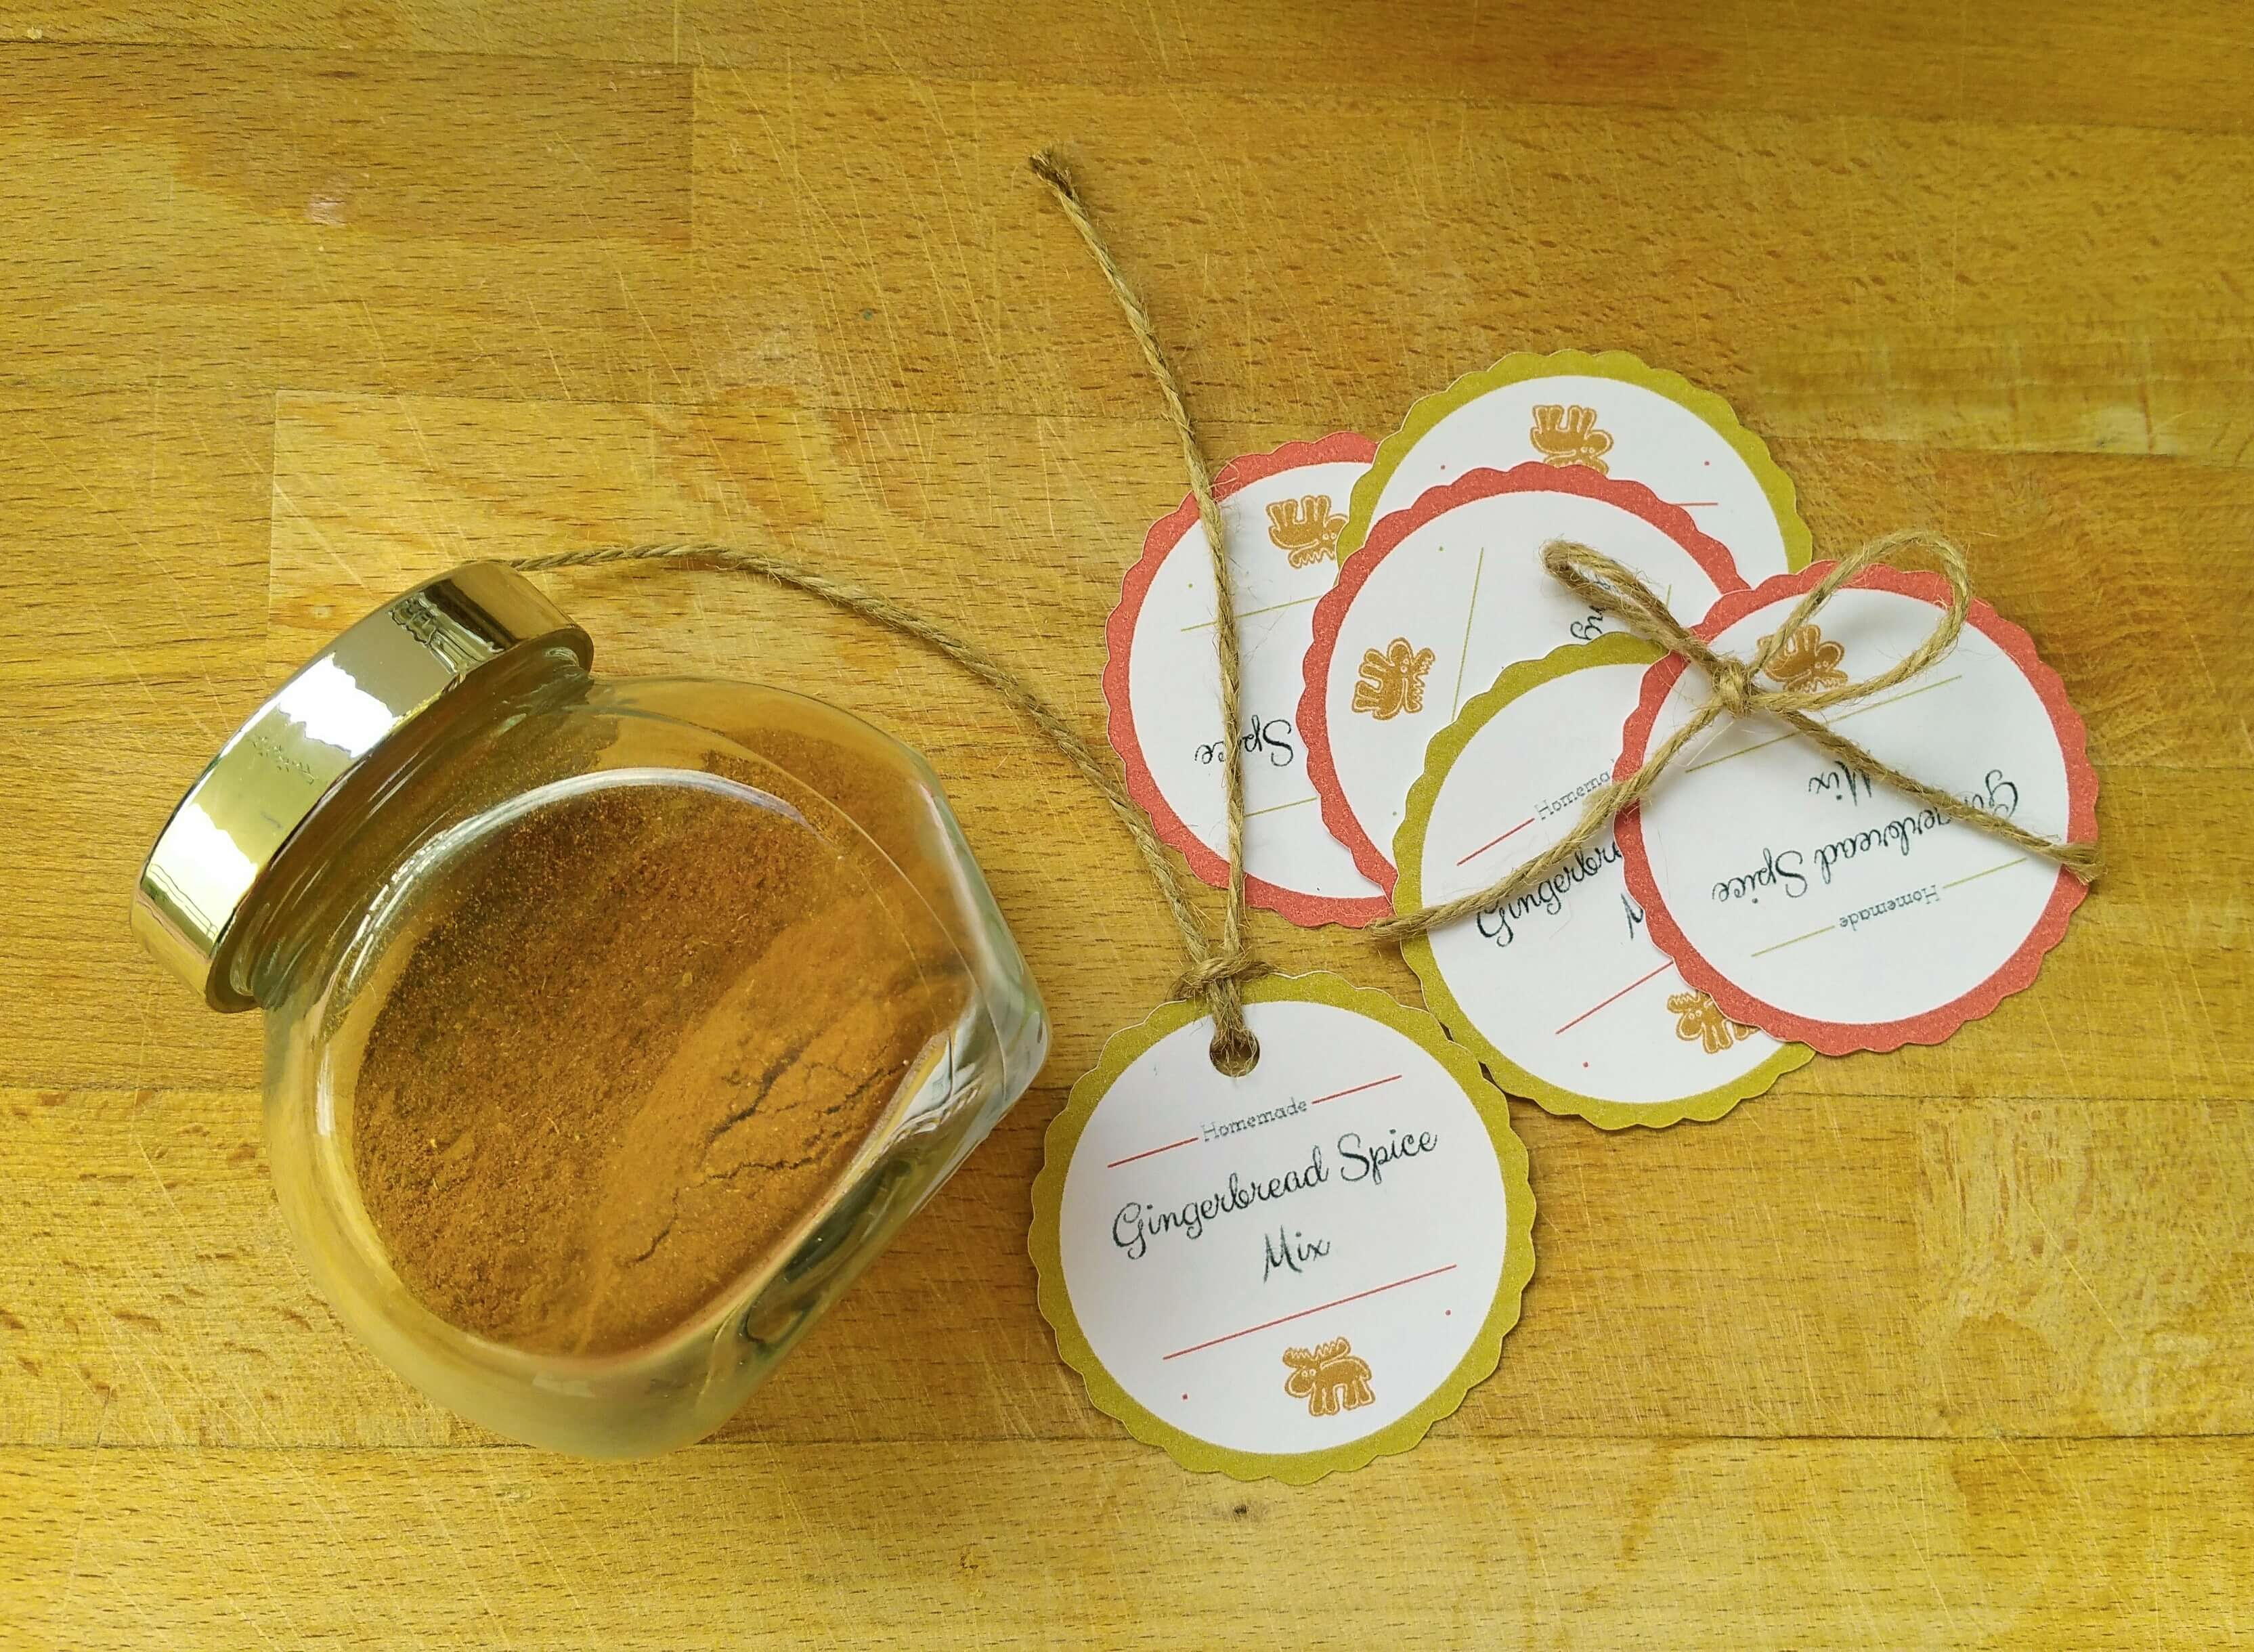 Gingerbread Spice Mix | Kicking Back the Pebbles